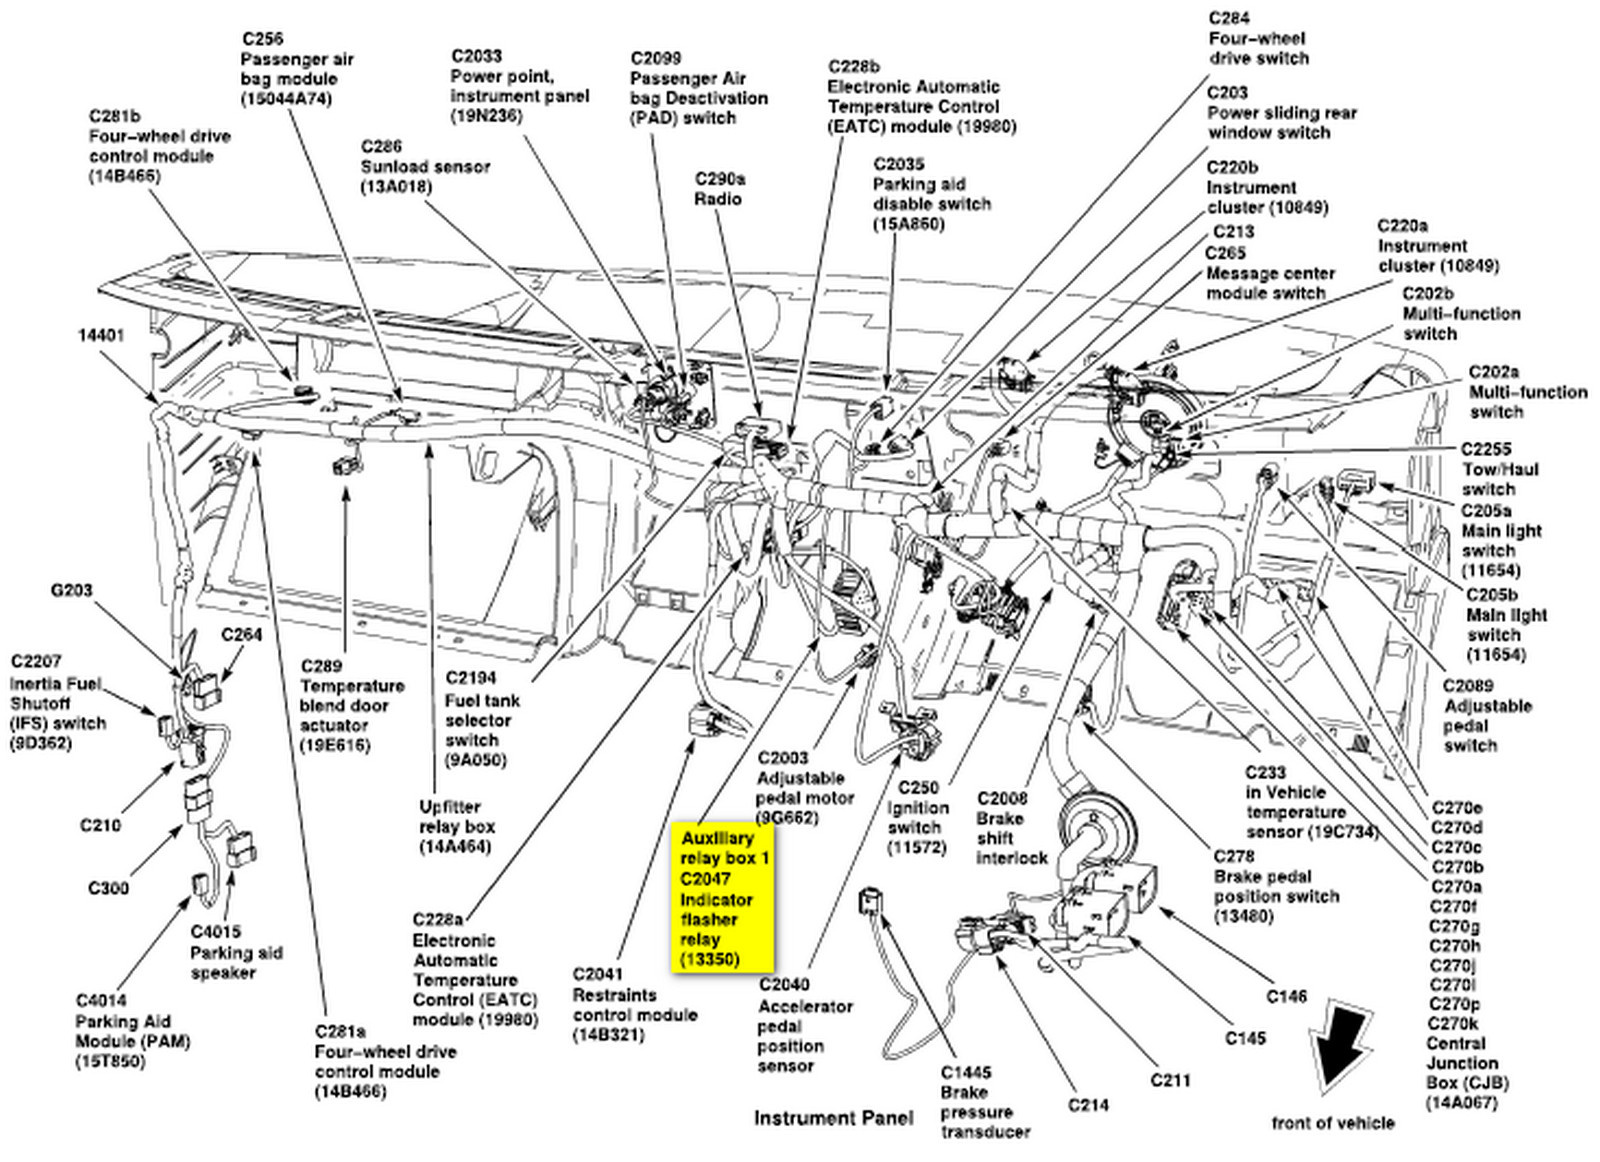 2003 Ford F150 Wiring Diagram On 2011 06 16 214231 Fuse Box together with Jeep Cherokee 1997 2001 Fuse Box Diagram 398208 in addition Discussion T60374 ds560387 together with 6i0xt Ford 2005 Ford Escape V6 2005 Ford Eacape together with Schematics h. on 2013 ford expedition ignition wiring diagram